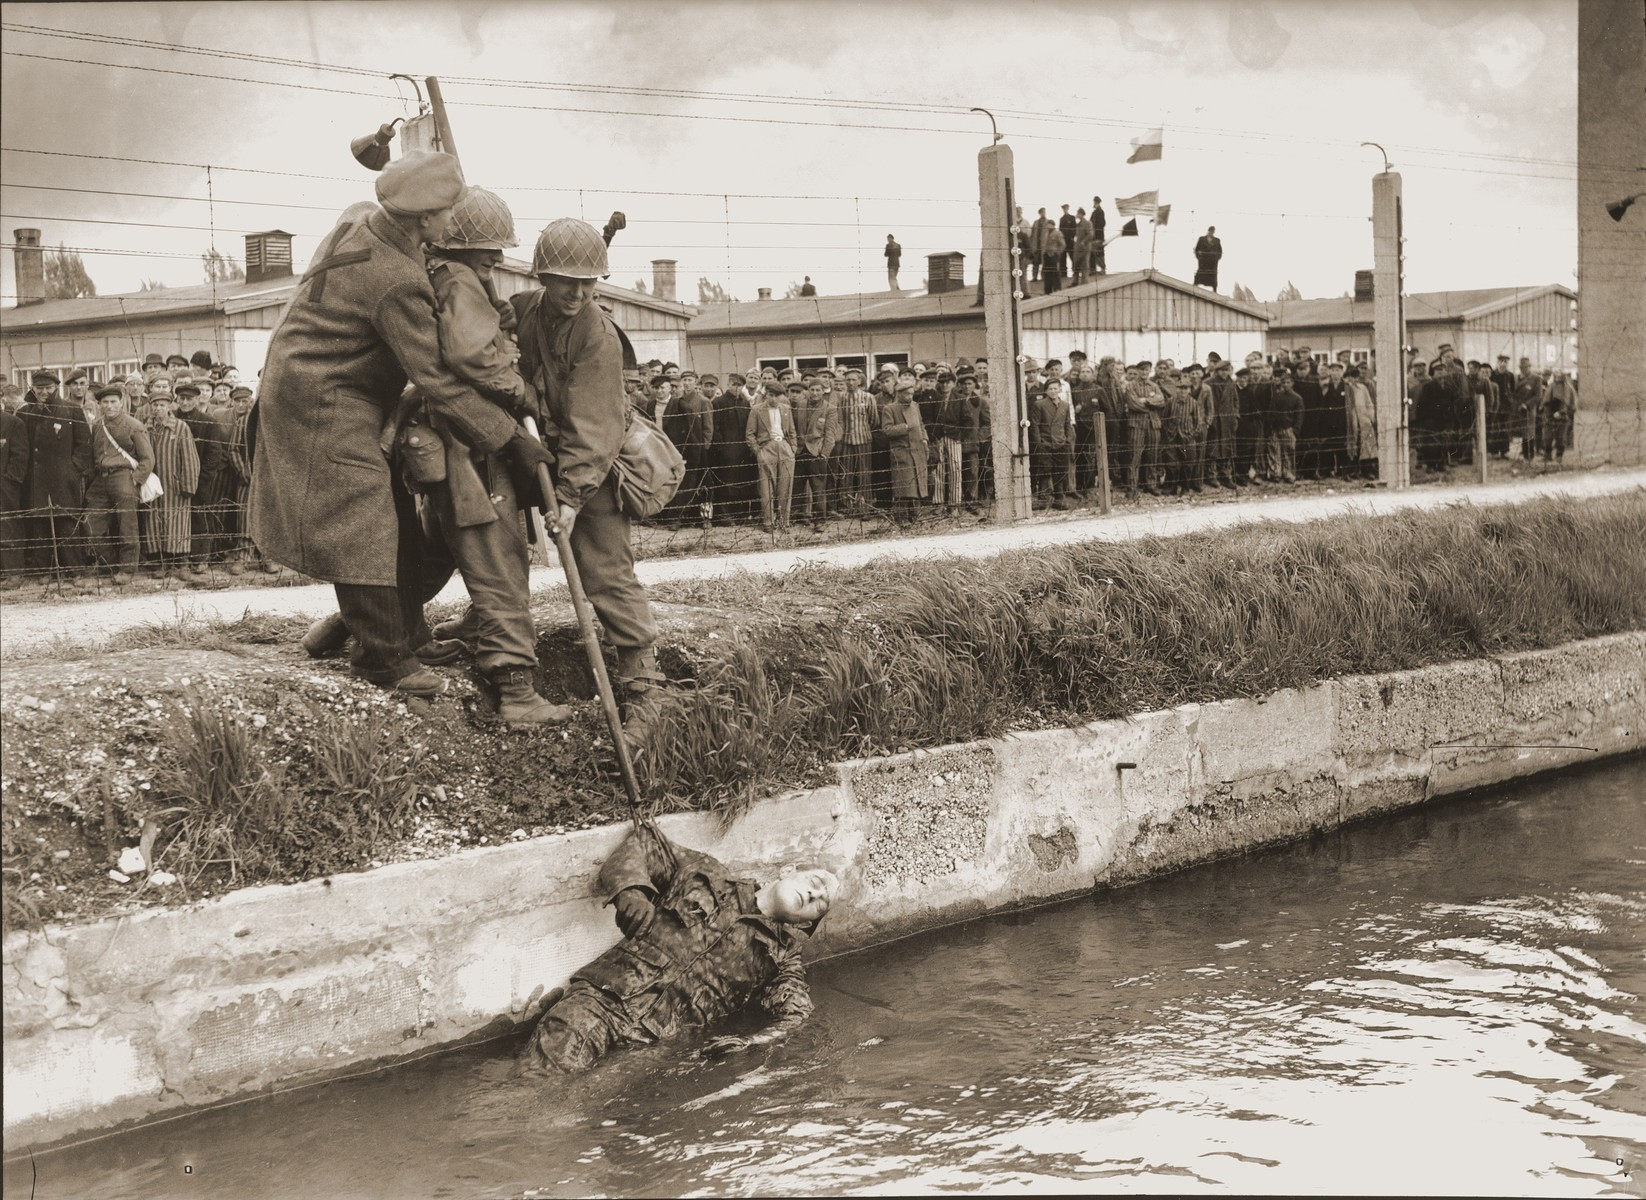 "Two soldiers from the 42nd Rainbow Division and a liberated prisoner fish the body of an SS guard out of the moat surrounding the Dachau concentration camp.   The original caption reads, ""Dachau Concentration Camp.  Horrors worse than those found in the German concentration camps of Buchenwald and Belsen were discovered in the stinking hell-hole of Dachau, captured by troops of the 42nd and 45th Infantry Divisions of the Seventh U.S. Army April 30, 1945.  More than 32,000 prisoners were liberated, among them some Englishmen, Canadians and Americans.  The camp was formally surrendered by an SS lieutenant carrying a white flag, accompanied by a Swiss Red Cross official, but SS troops opened fire as American troops approached the main entrance.  The Germans were shot down.  Three prisoners were electrocuted when they tried to burst through the electrified wire barrier to welcome the Americans.  SS guards opened fire on other prisoners who went wild with joy and rushed to meet the liberating troops.  Prisoners with access to records said 9,000 people died of hunger, disease or shooting within the past three months at Dachau.  Four thousand more perished during cold Winter months.  When Americans entered the camp, they found 50 open railway cars standing on a siding, apparently full of dirty clothing but actually found to contain hundreds of corpses piled on top of each other.  They also found a row of kennels where fierce dogs were kept to set after escaping men.  They discovered gas extermination chambers, incinerators full of naked bodies, bodies marked for dissection and the bodies of several small children.   This photo shows: Two soldiers of the 42nd ""Rainbow"" Division, Seventh U.S. Army, are assisted by a liberated political prisoner as they pull the body of a dead Nazi SS guard from the moat surrounding the camp.  Other liberated prisoners in the background watch from behind the former electrified fence.  Some SS guards were killed and thrown into the moat by the liberated prisoners, others by American soldiers."""